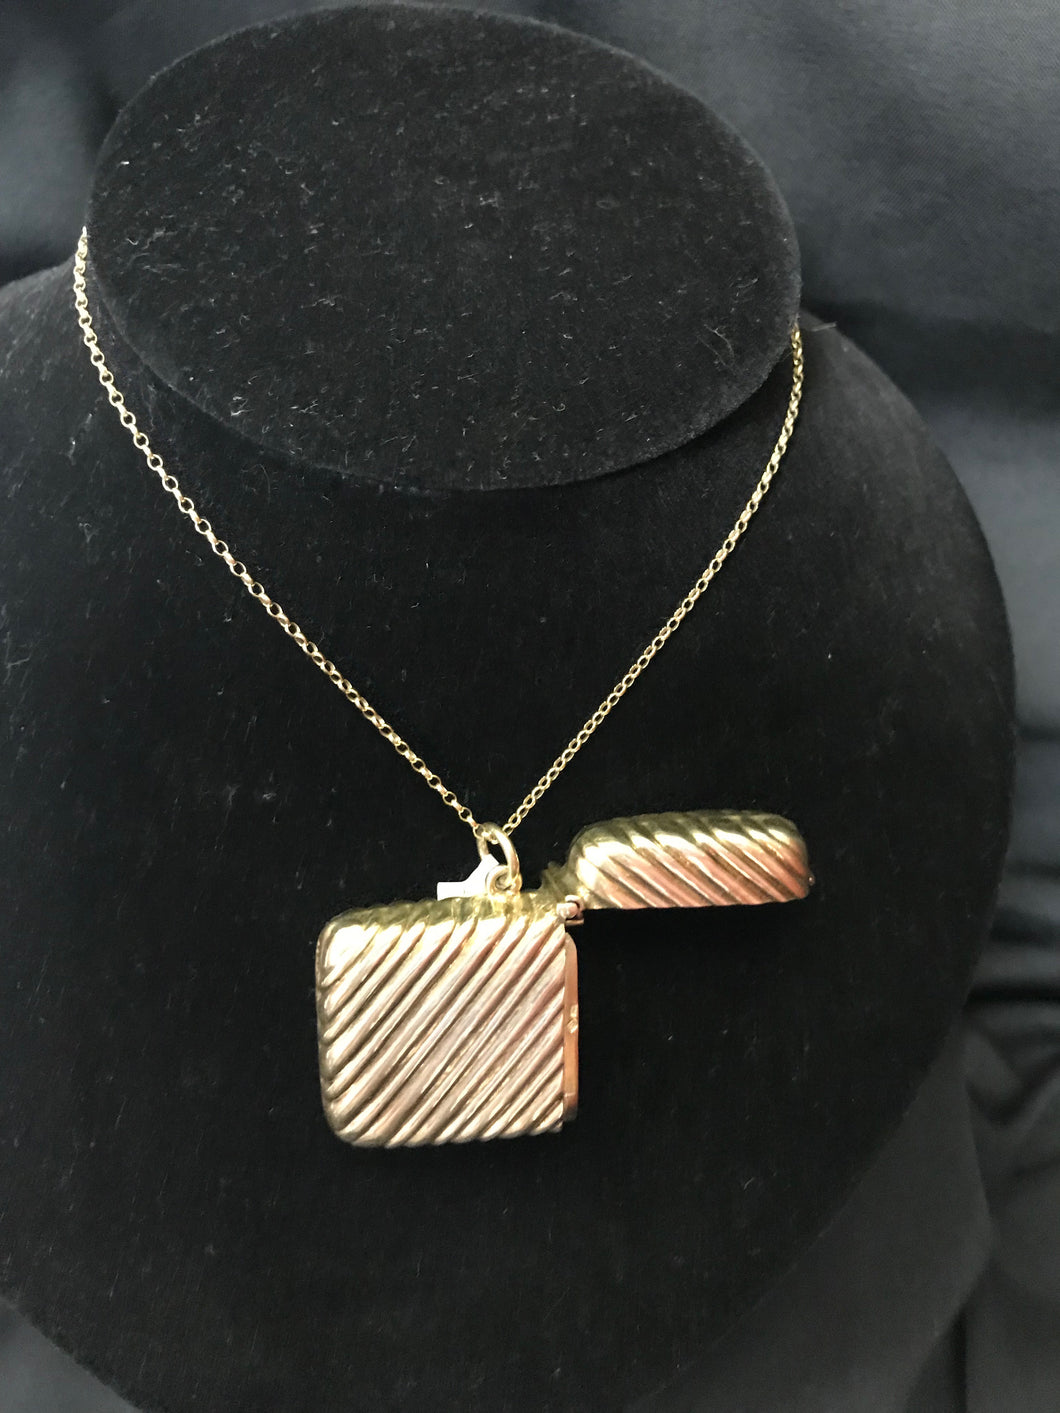 Match Case Pendant | 22ct Gold plated